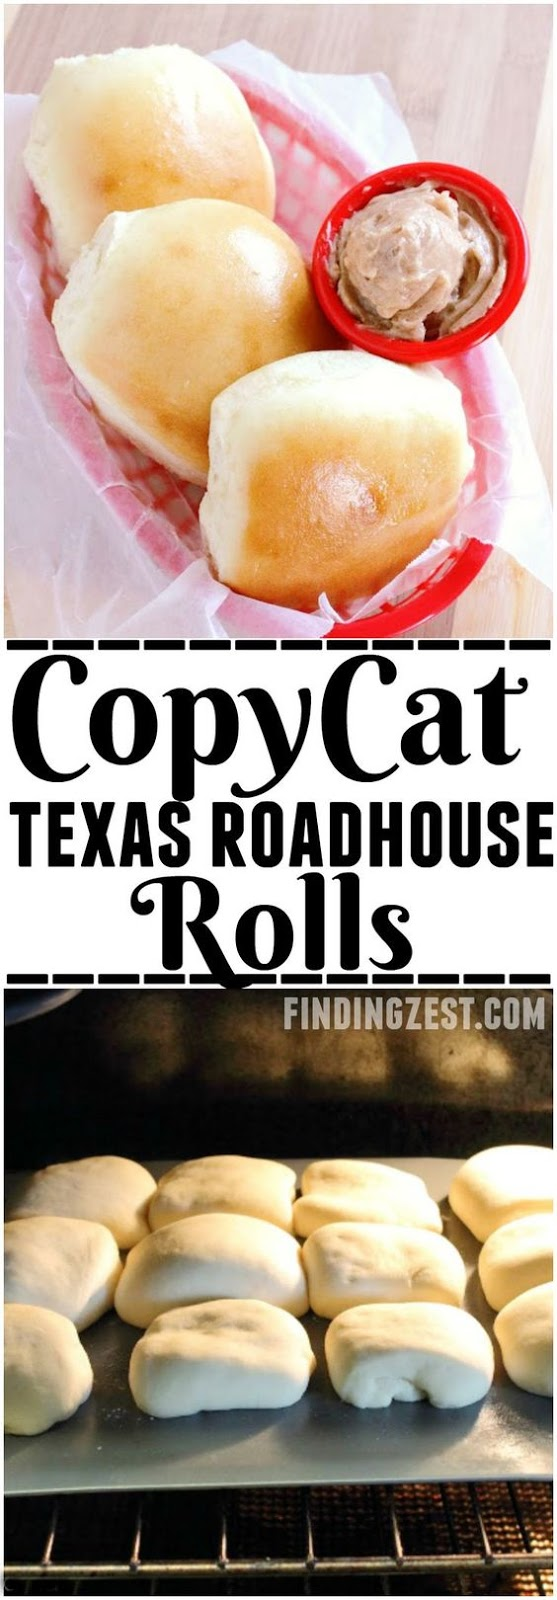 ★★★★☆ 1643 ratings     | Copycat Texas Roadhouse Rolls and Cinnamon Butter Recipe #Copycat #Texas #Roadhouse #Rolls #Cinnamon #Butter #Recipe